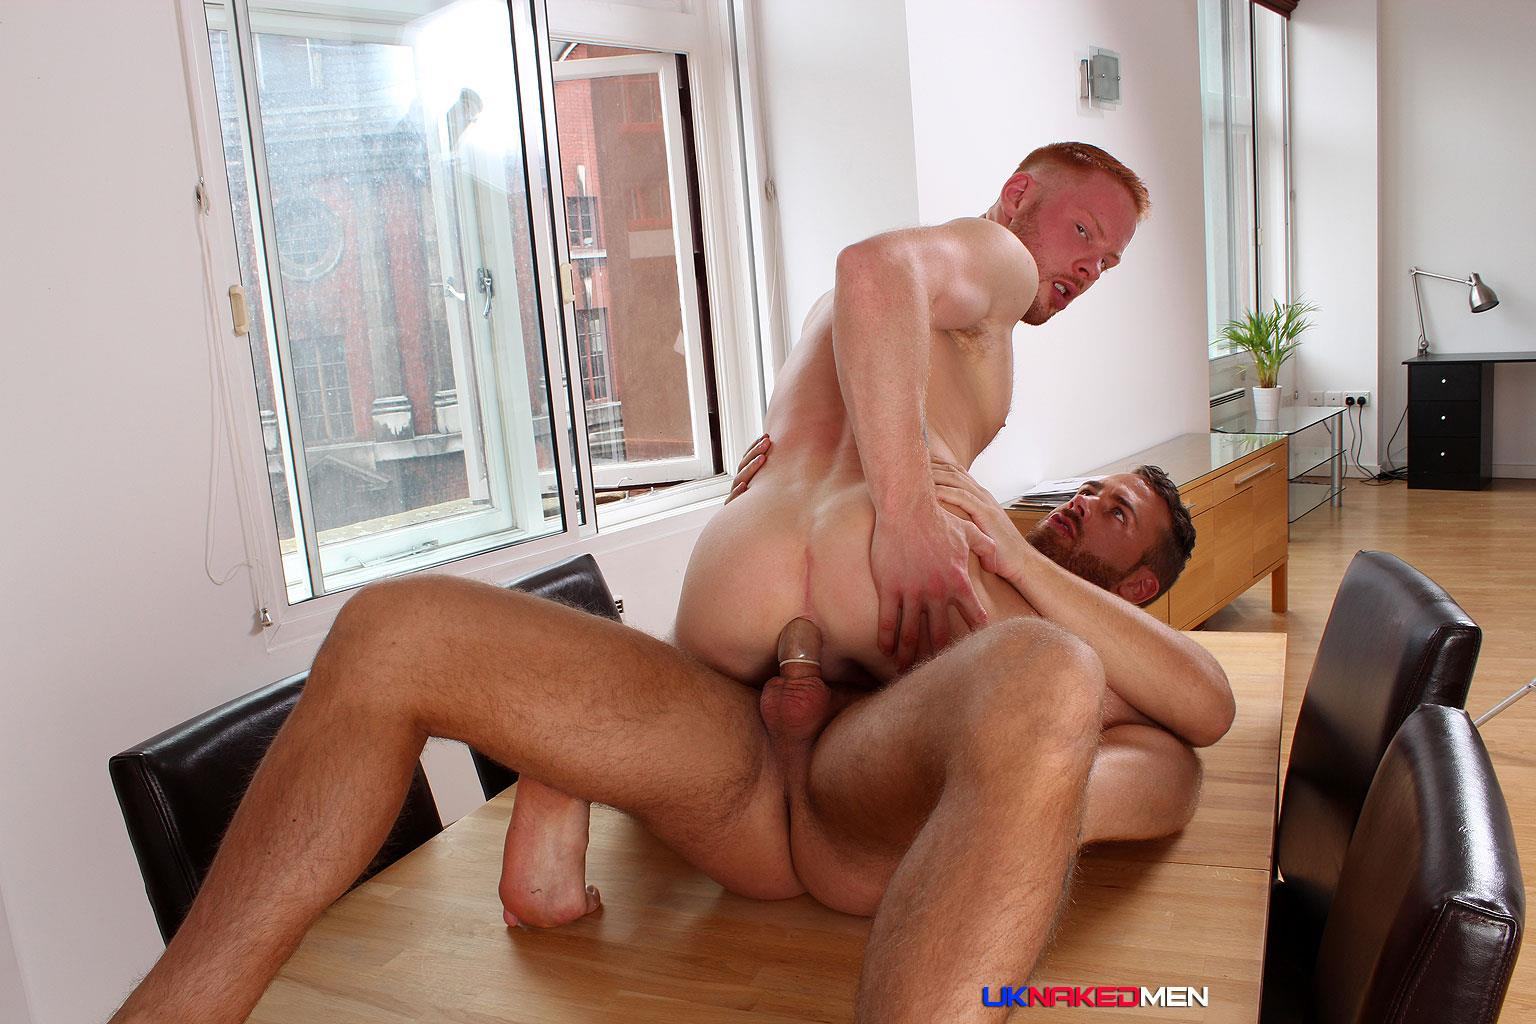 UK Naked Men Logan Moore and Andro Maas Redhead Gets Fucked By Big Uncut Cock Amateur Gay Porn 16 Redhead Andro Maas Takes A Big Thick Uncut Cock Up The Ass